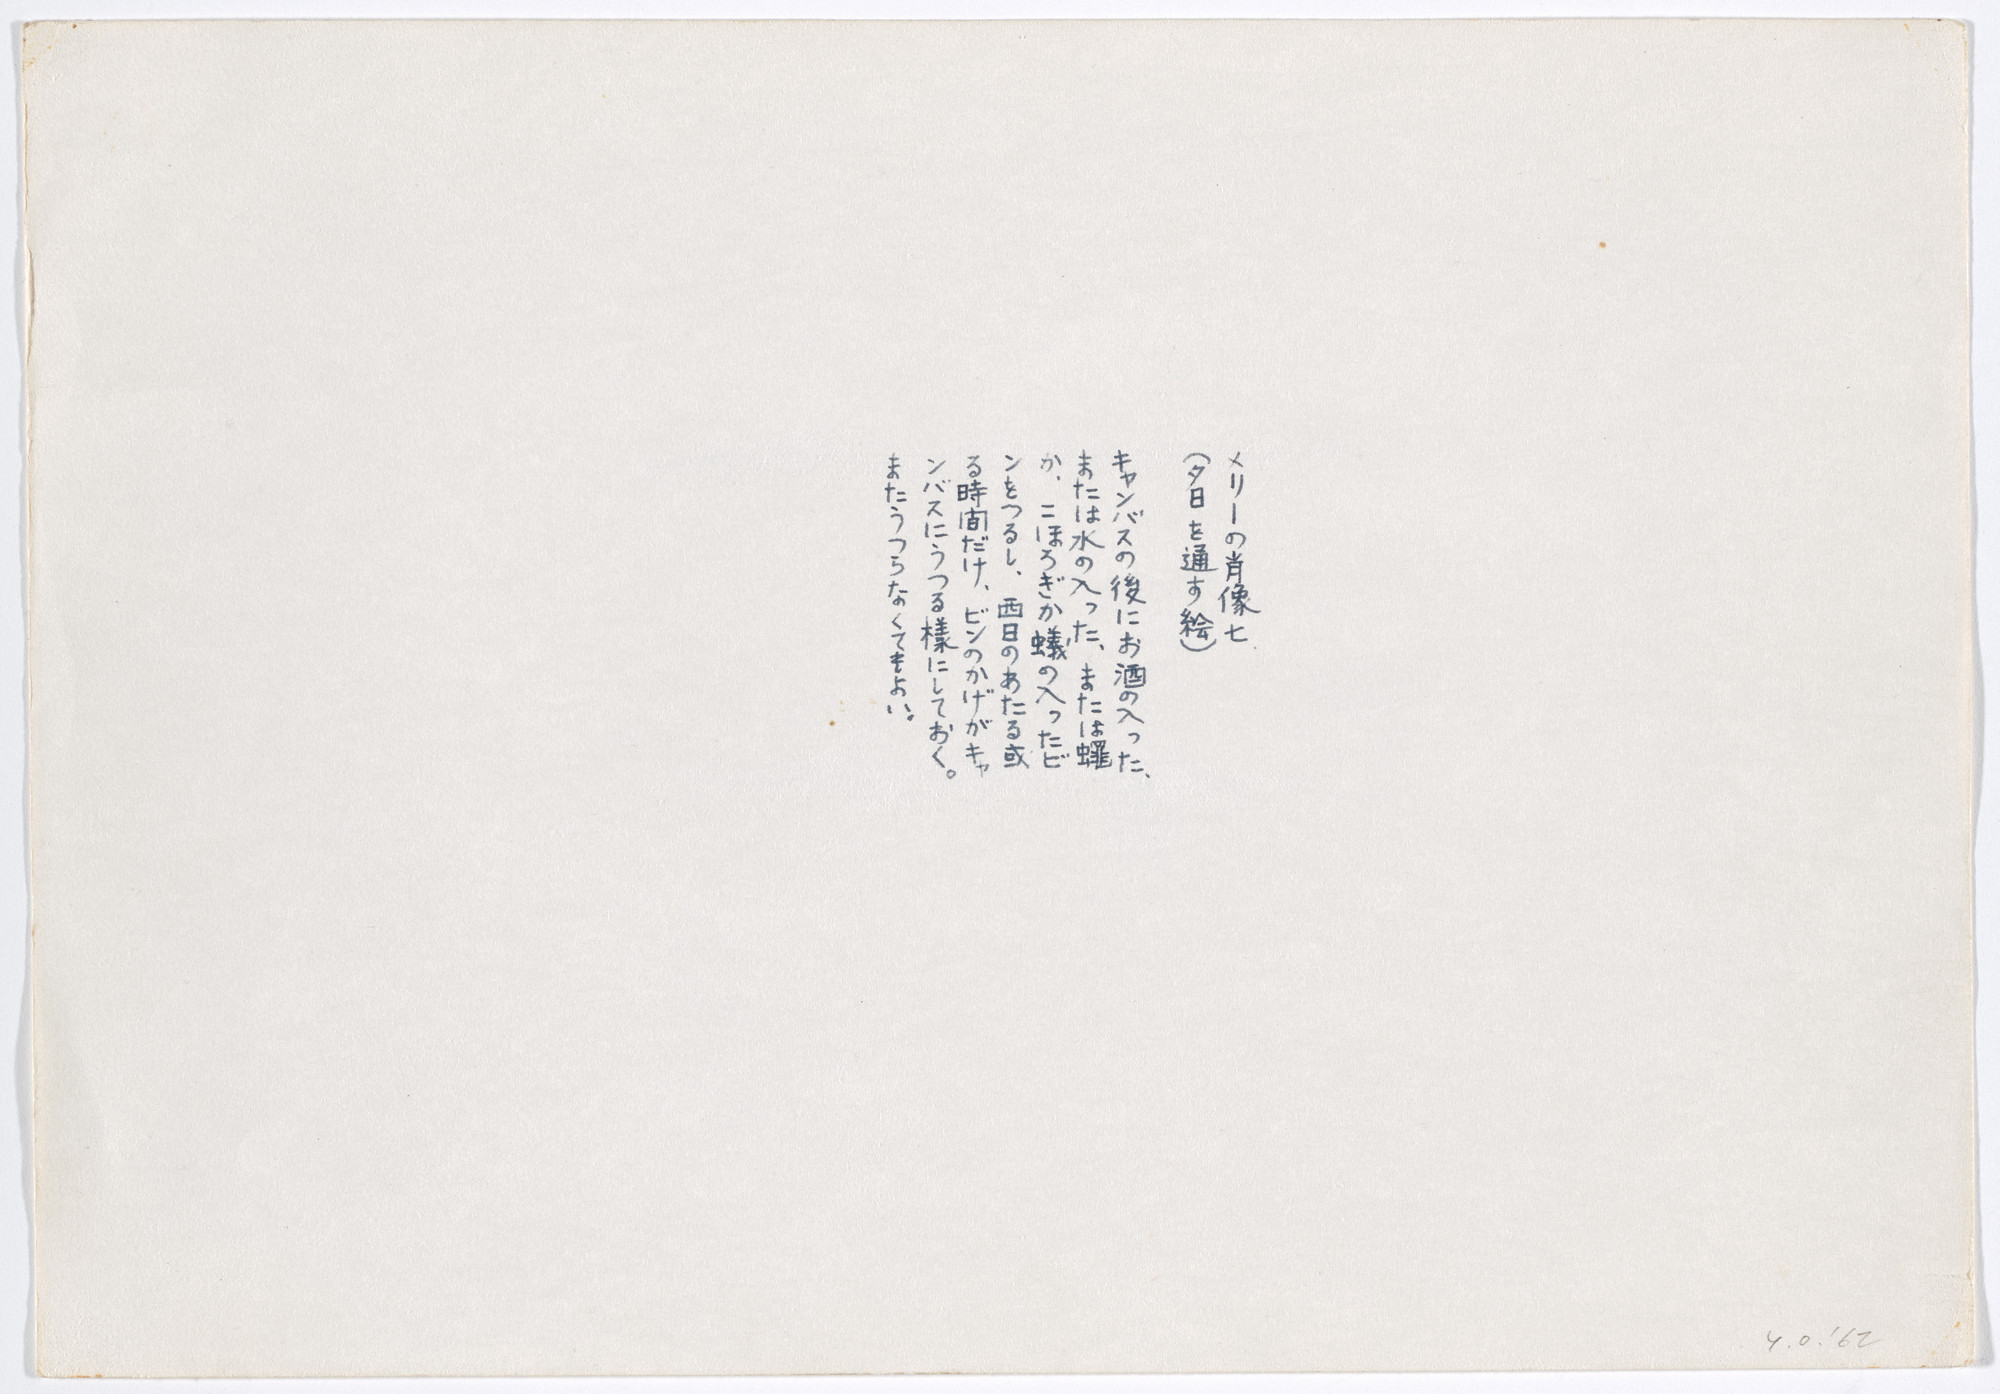 Yoko Ono. Painting to Let the Evening Light Go Through. 1961